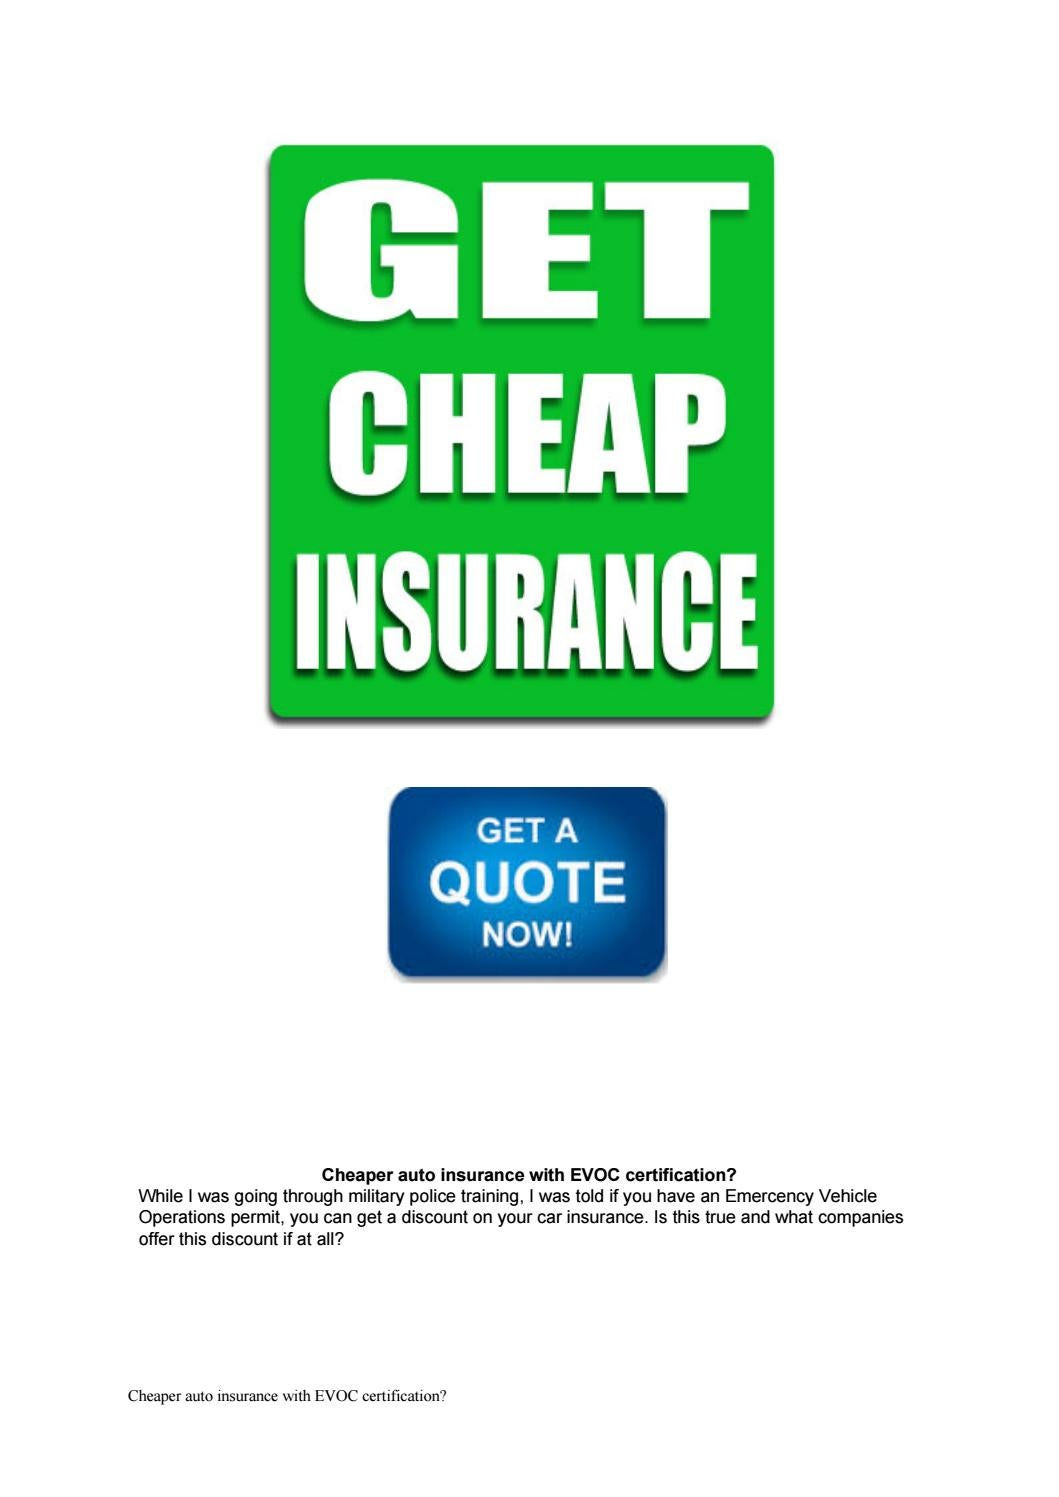 Get Cheap Insurance Cheaper Auto Insurance With Evoc Certification By Levey0684 Issuu